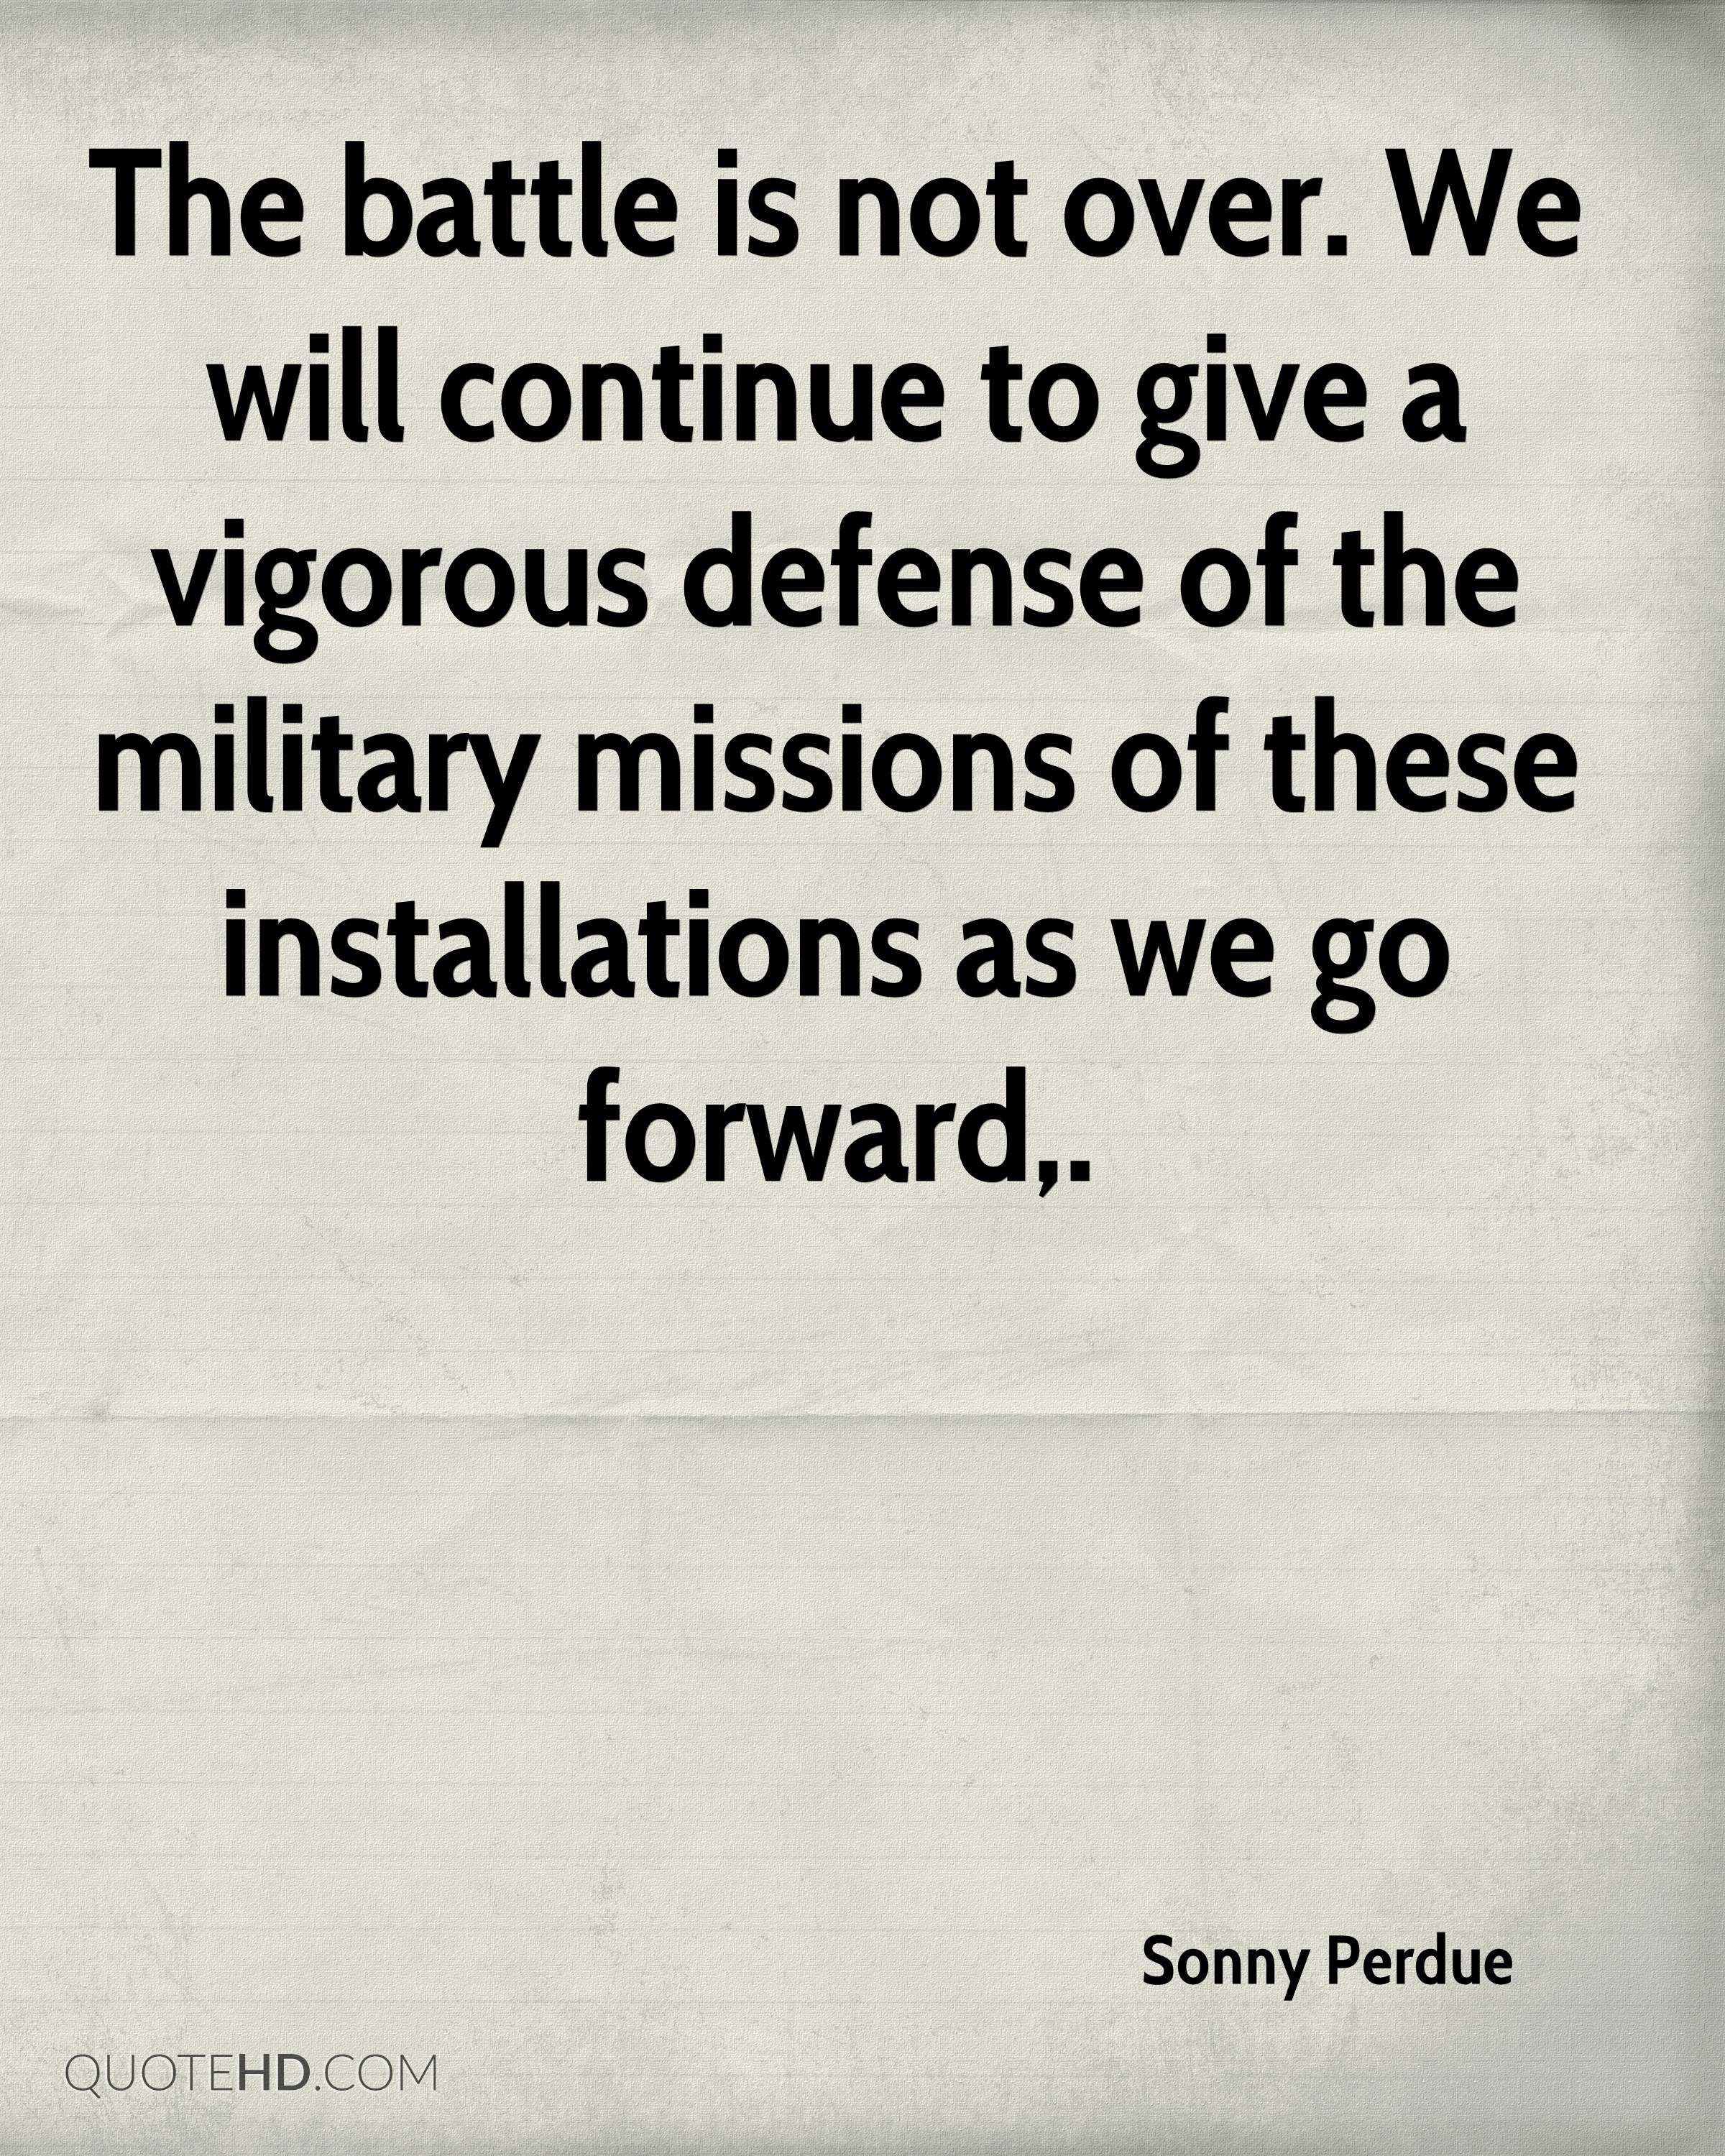 The battle is not over. We will continue to give a vigorous defense of the military missions of these installations as we go forward.